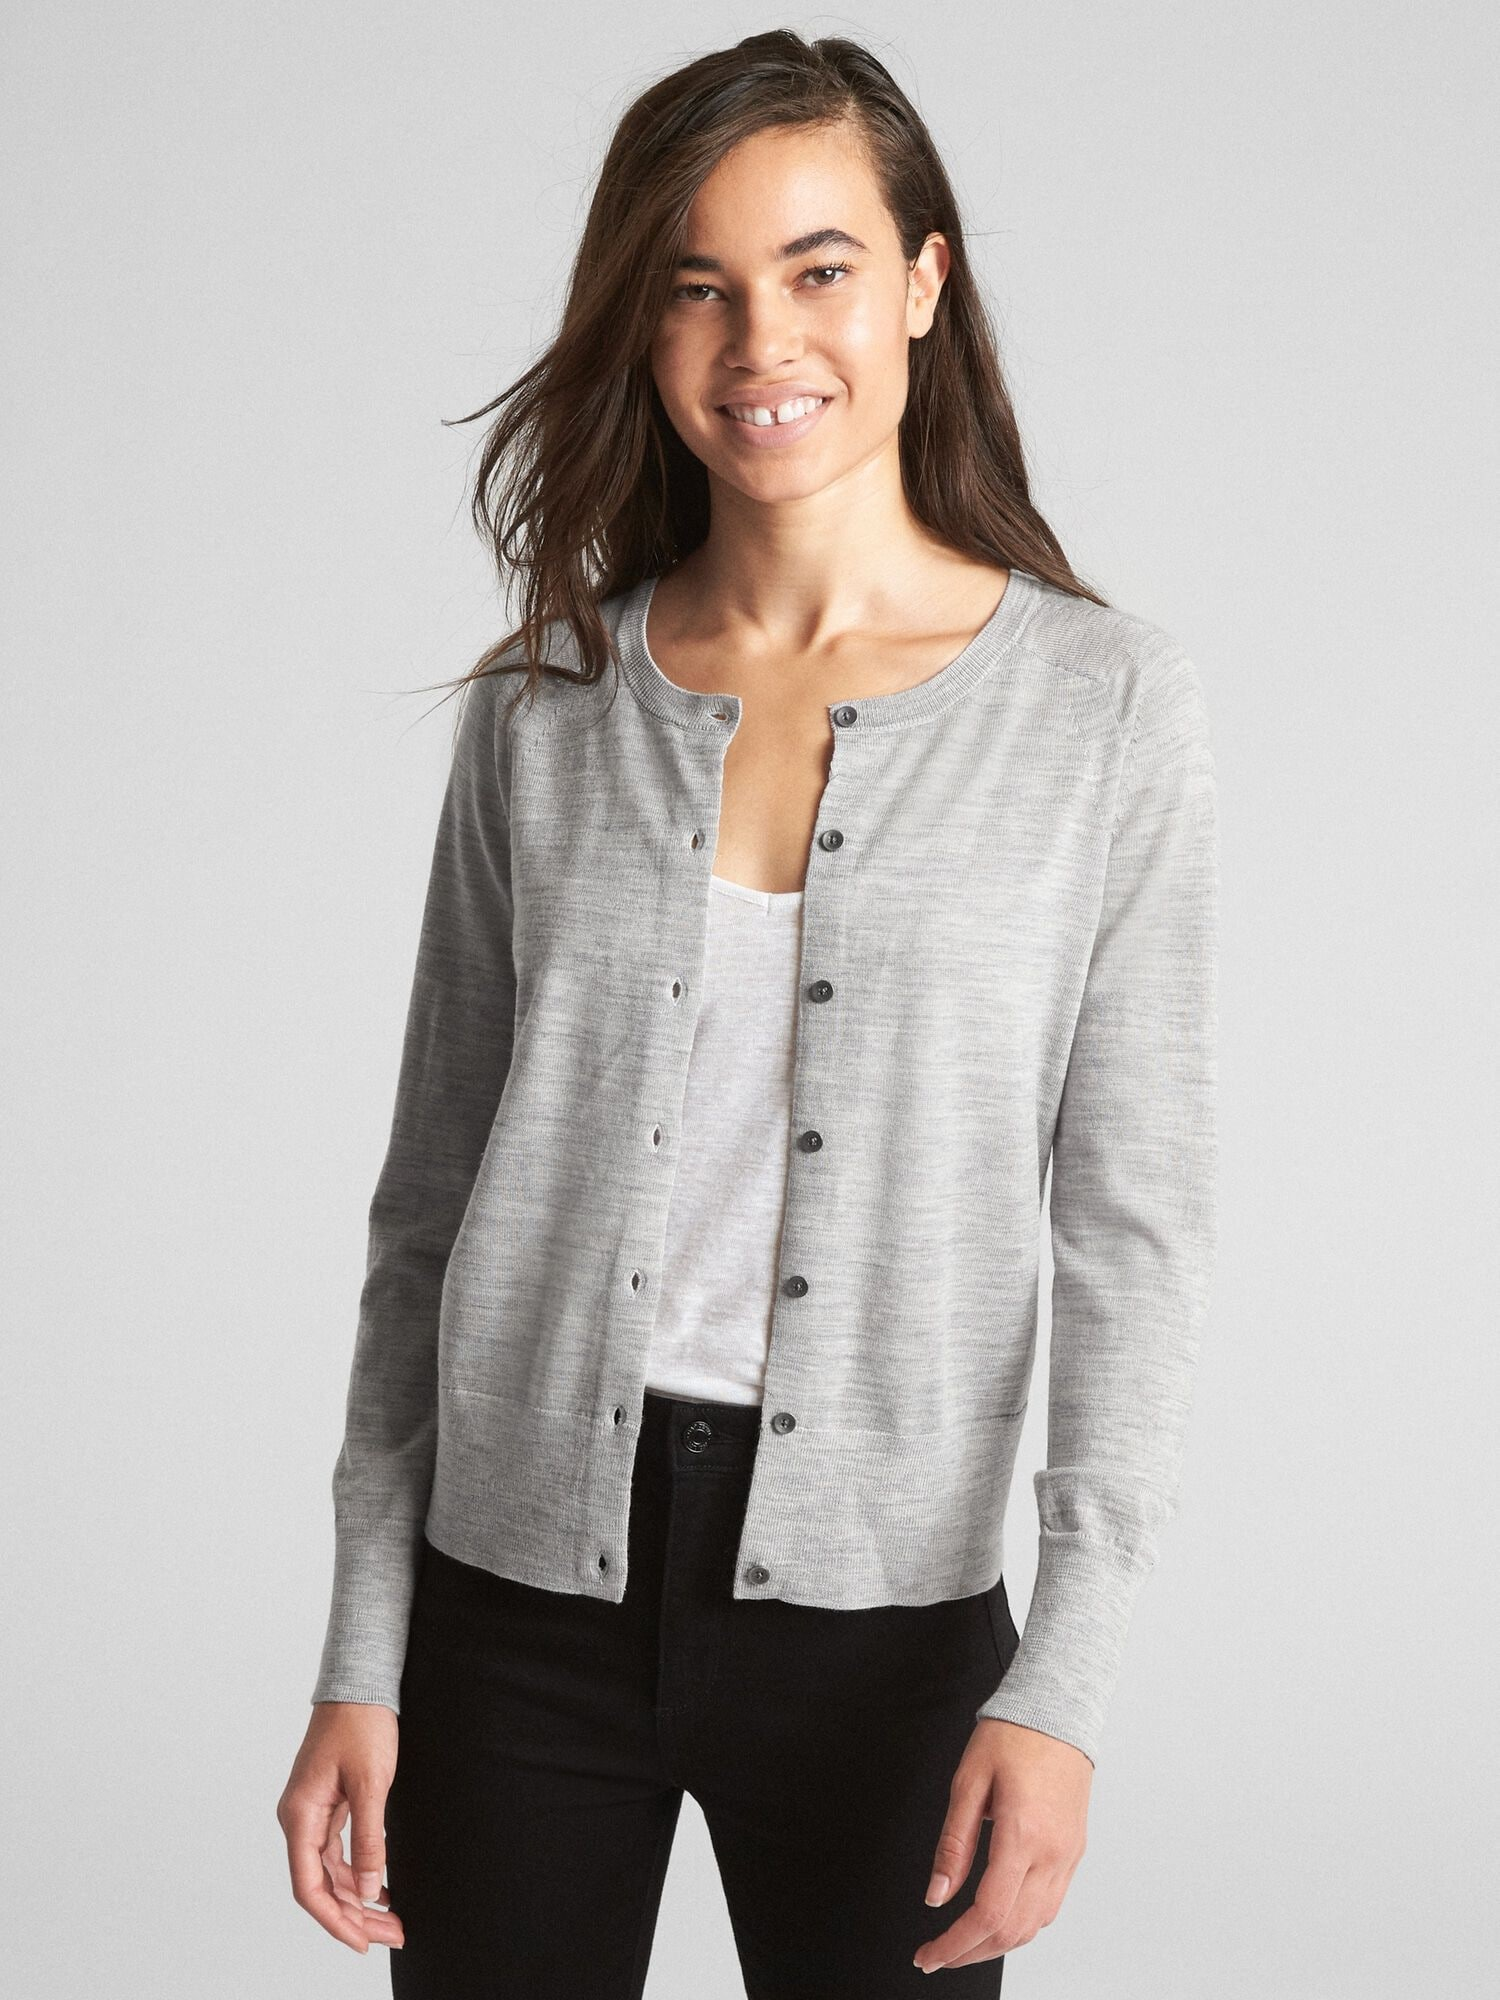 787a4097d Cardigan Sweater in Merino Wool